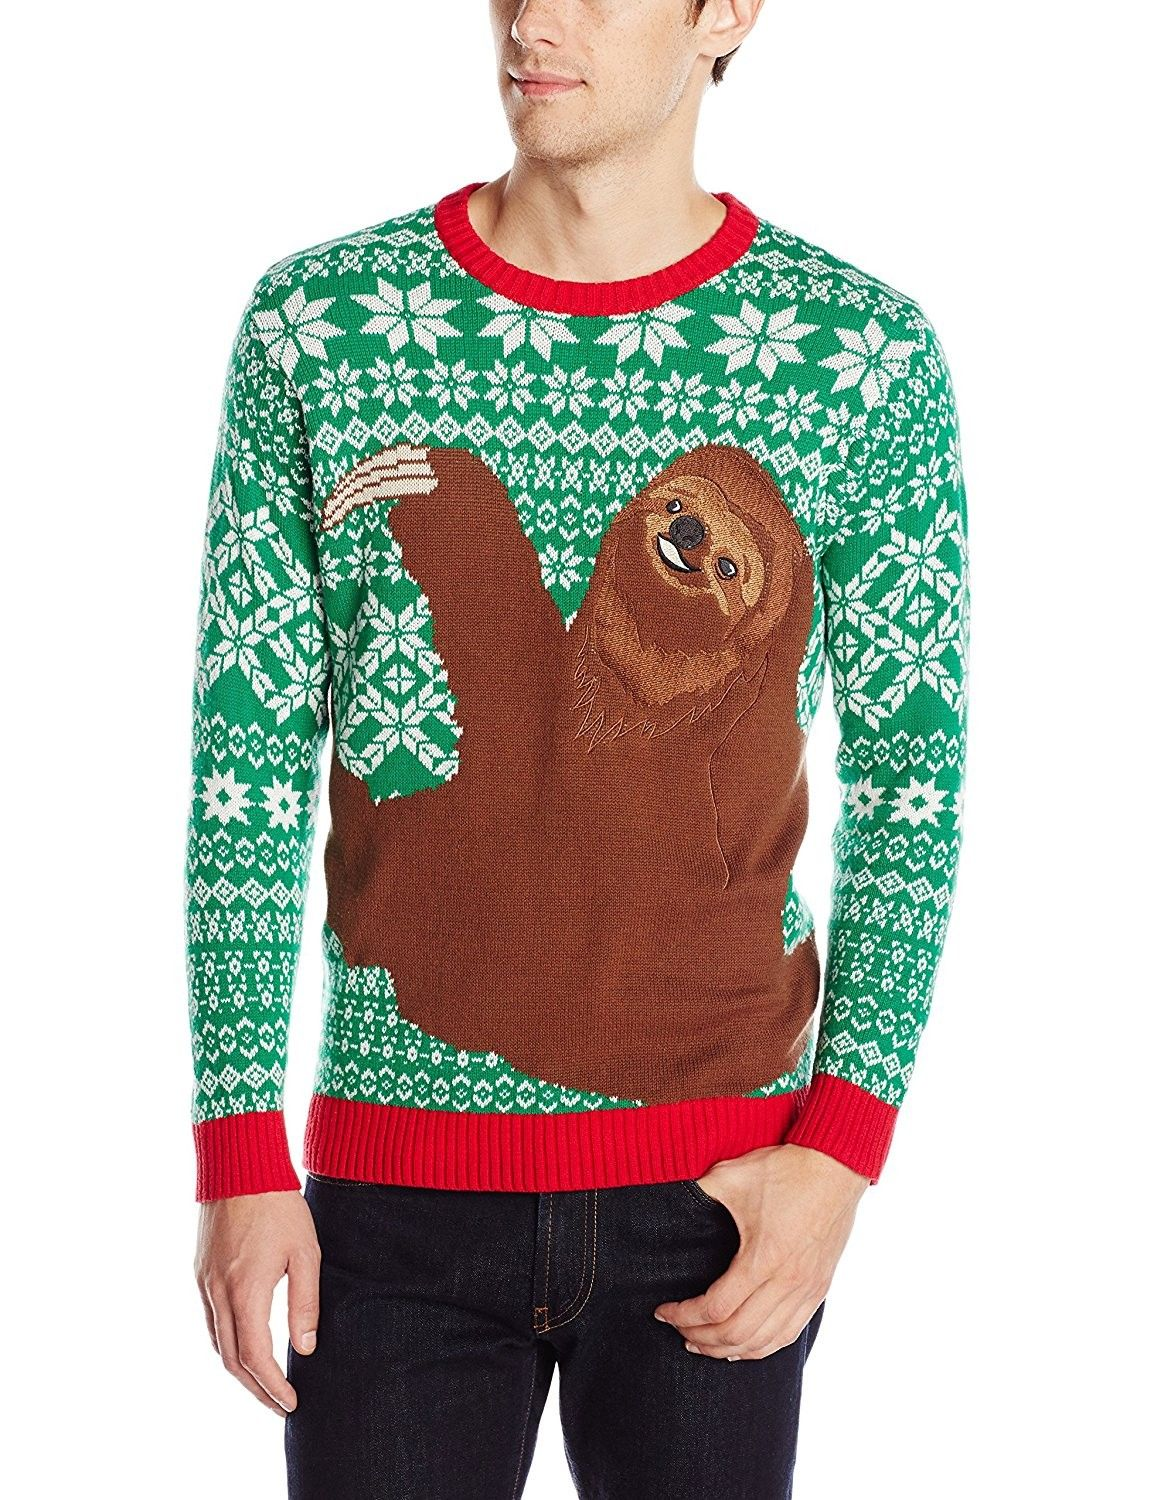 094c815e46bb Men s Sloth Hug Ugly Christmas Sweater - Green Red White ...